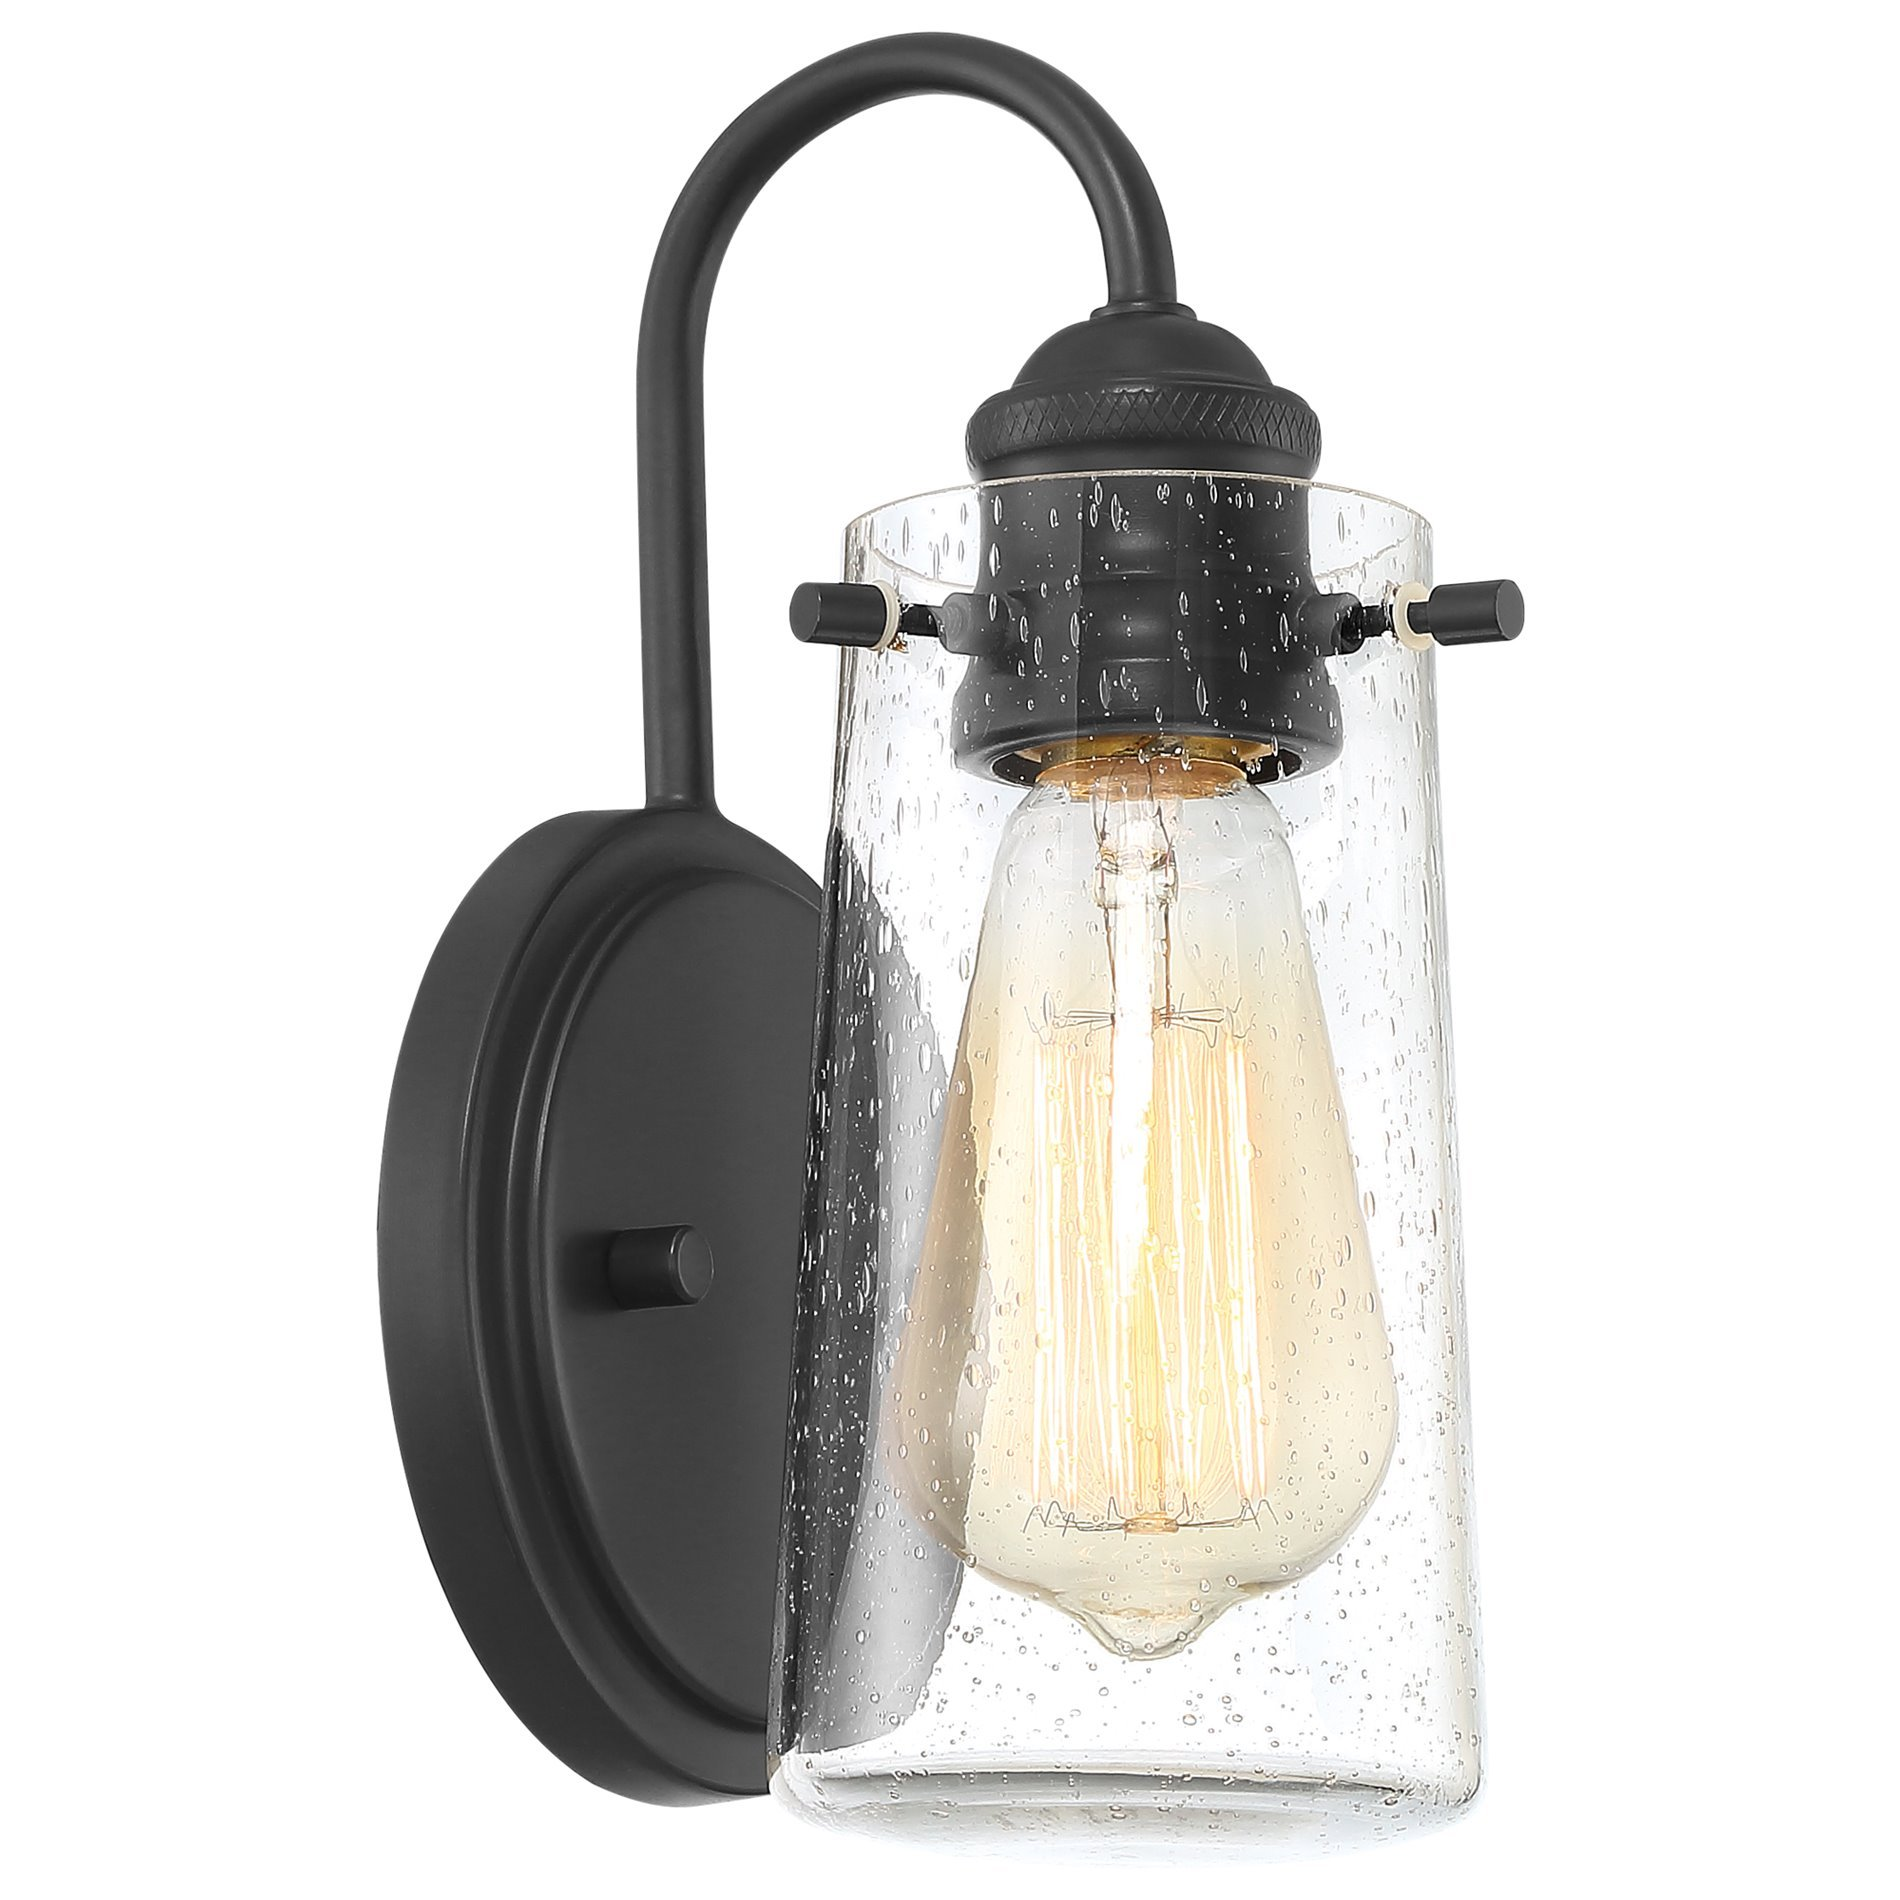 "Black Finish Bathroom Lighting: Kira Home Rayne 9.5"" Modern 1-Light Wall Sconce/Bathroom"